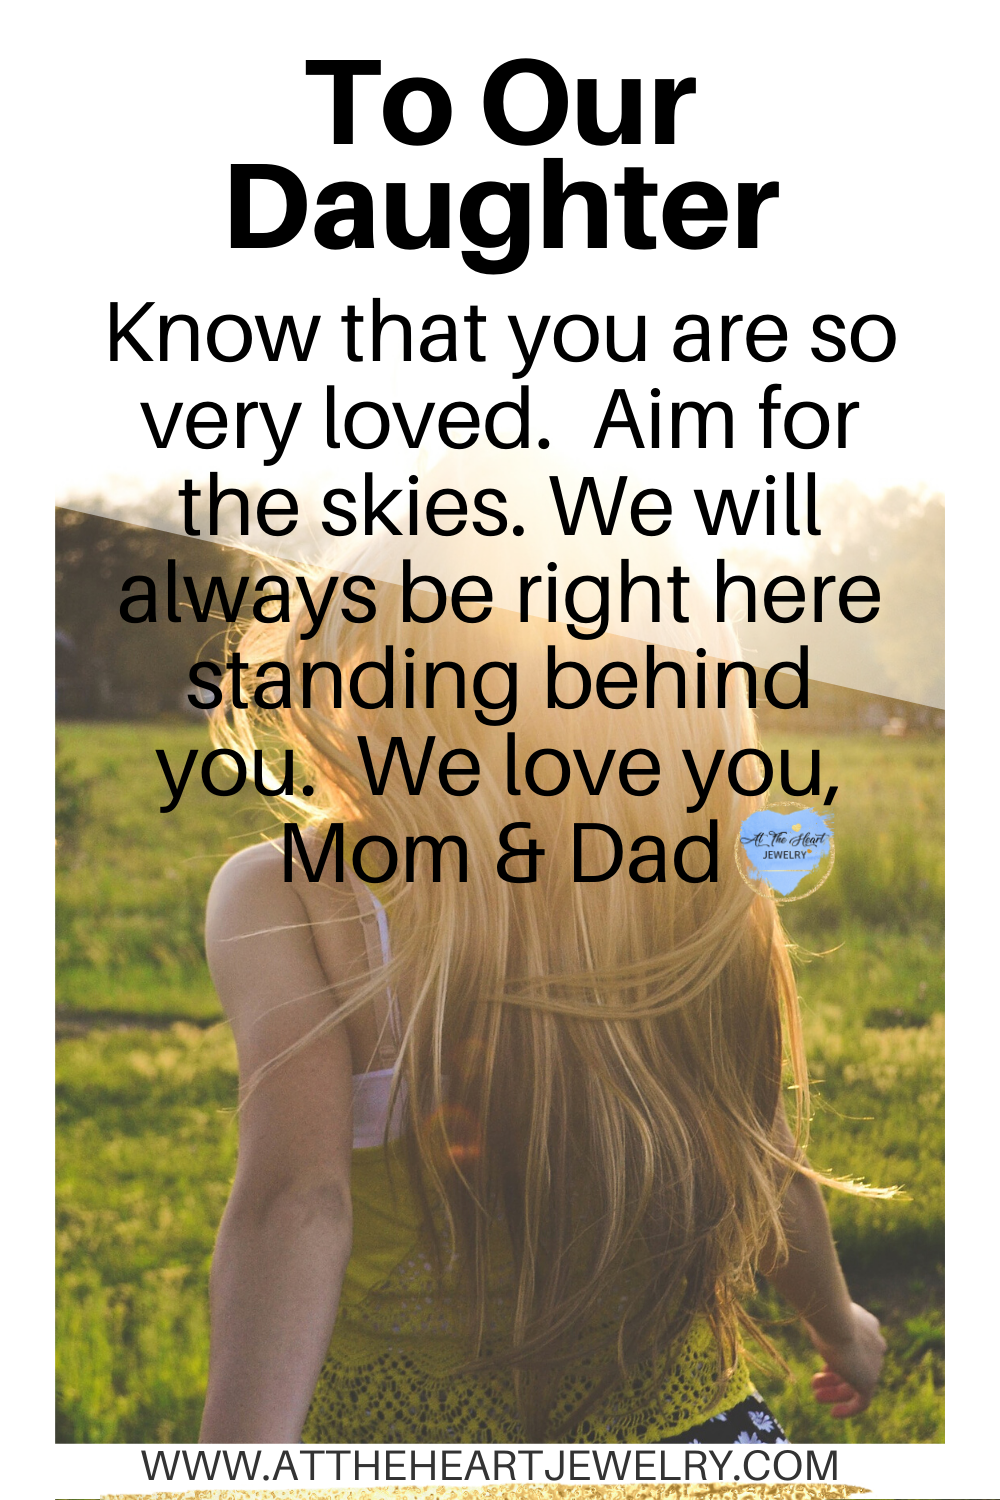 TO OUR DAUGHTER KNOW THAT YOU ARE SO VERY LOVED From MOM